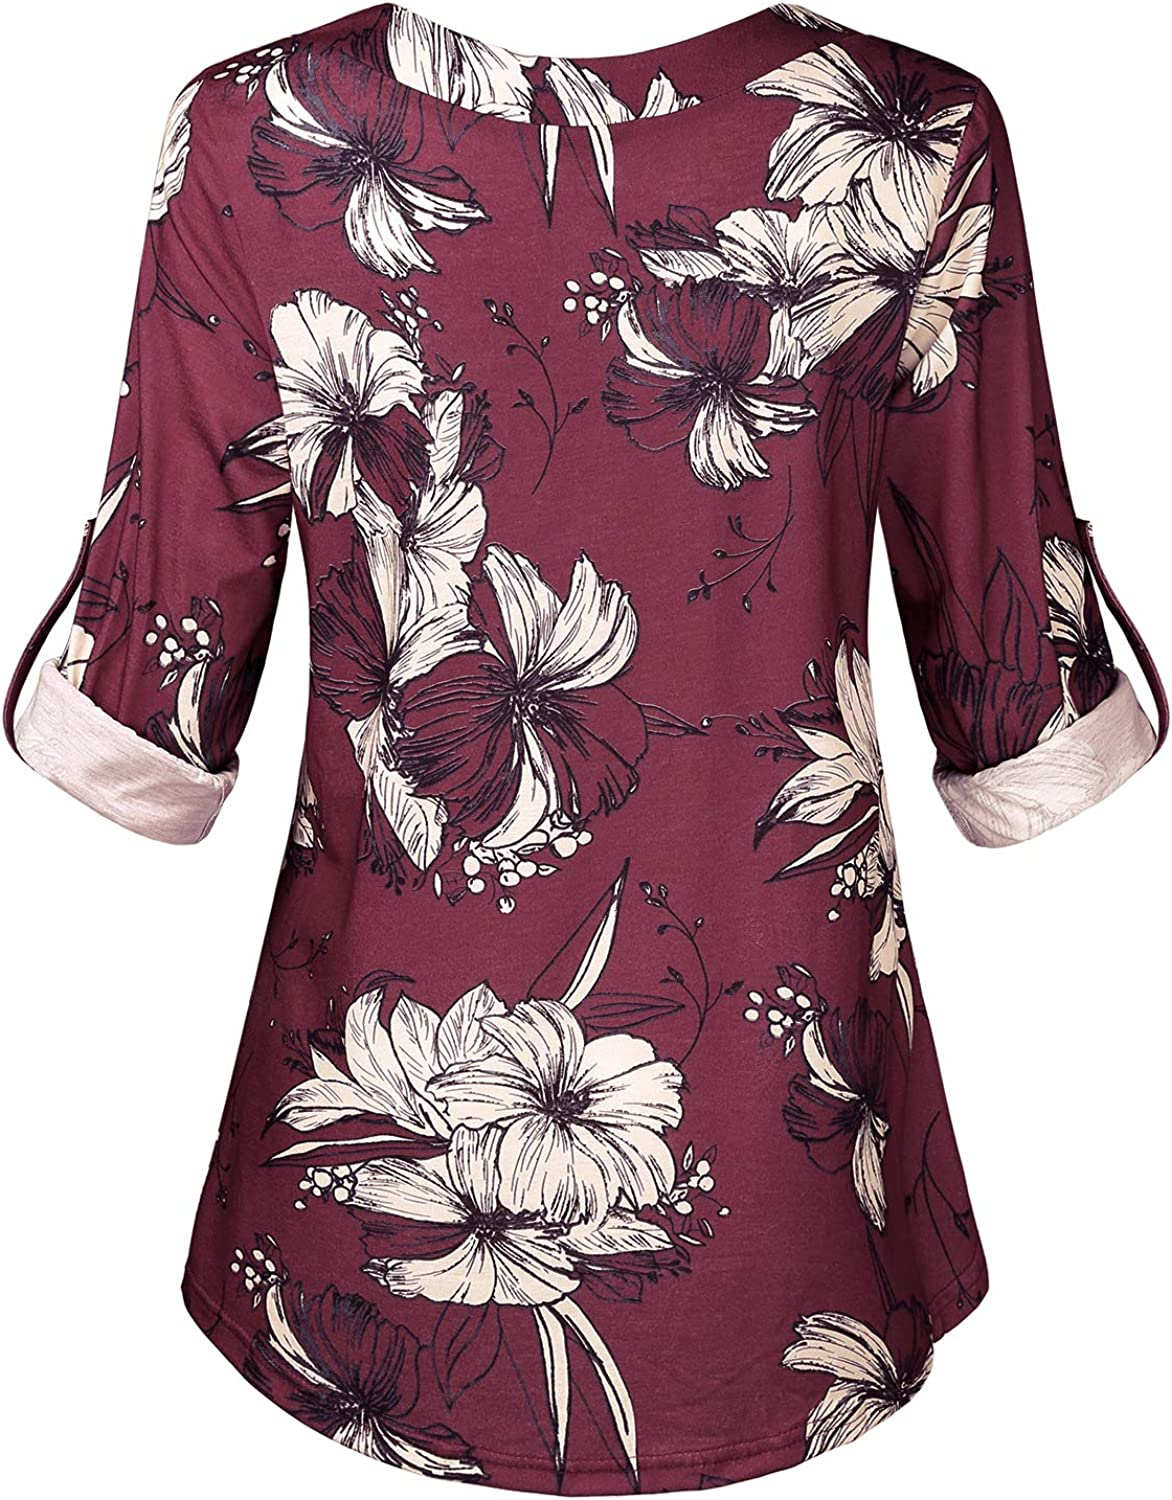 Hibelle Womens Roll-up Long Sleeve V-Neck Casual Flowy Tunic Blouse